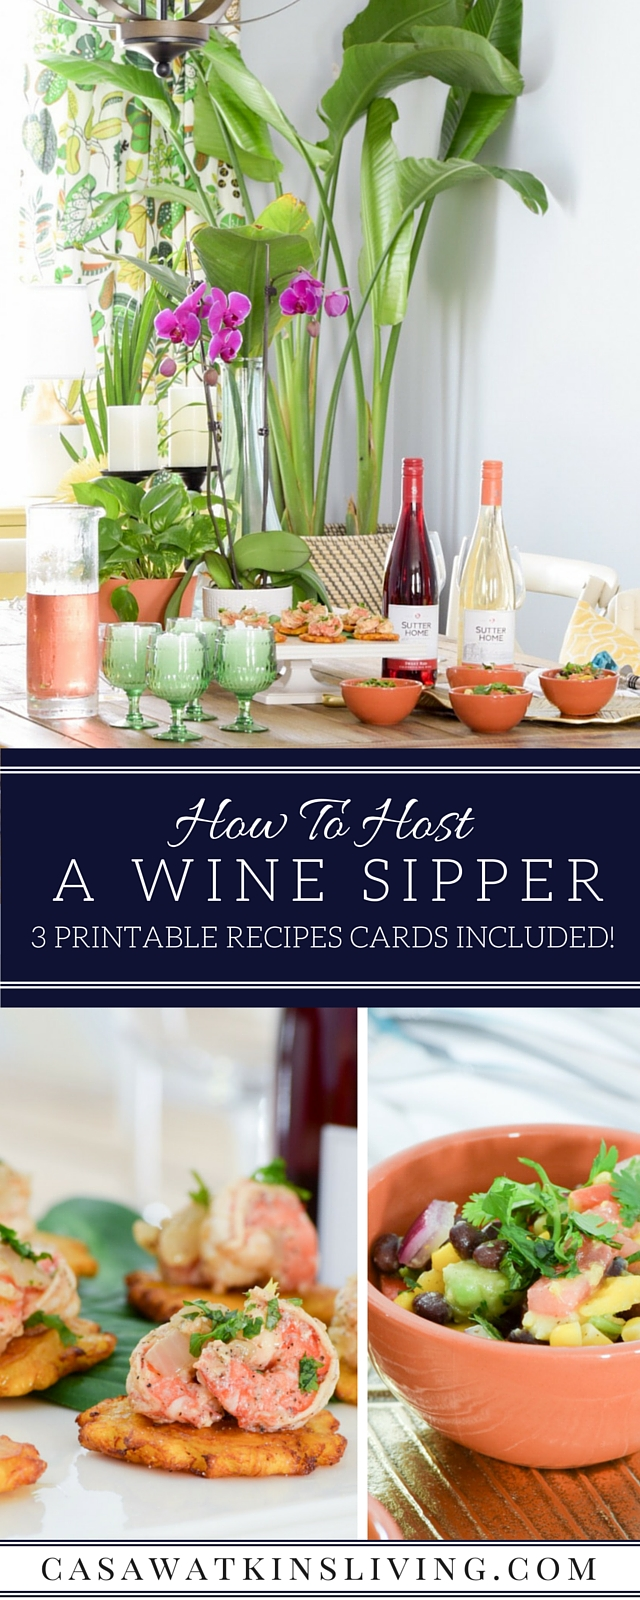 Great ideas for hosting a wine sipper with 3 tasty recipes included